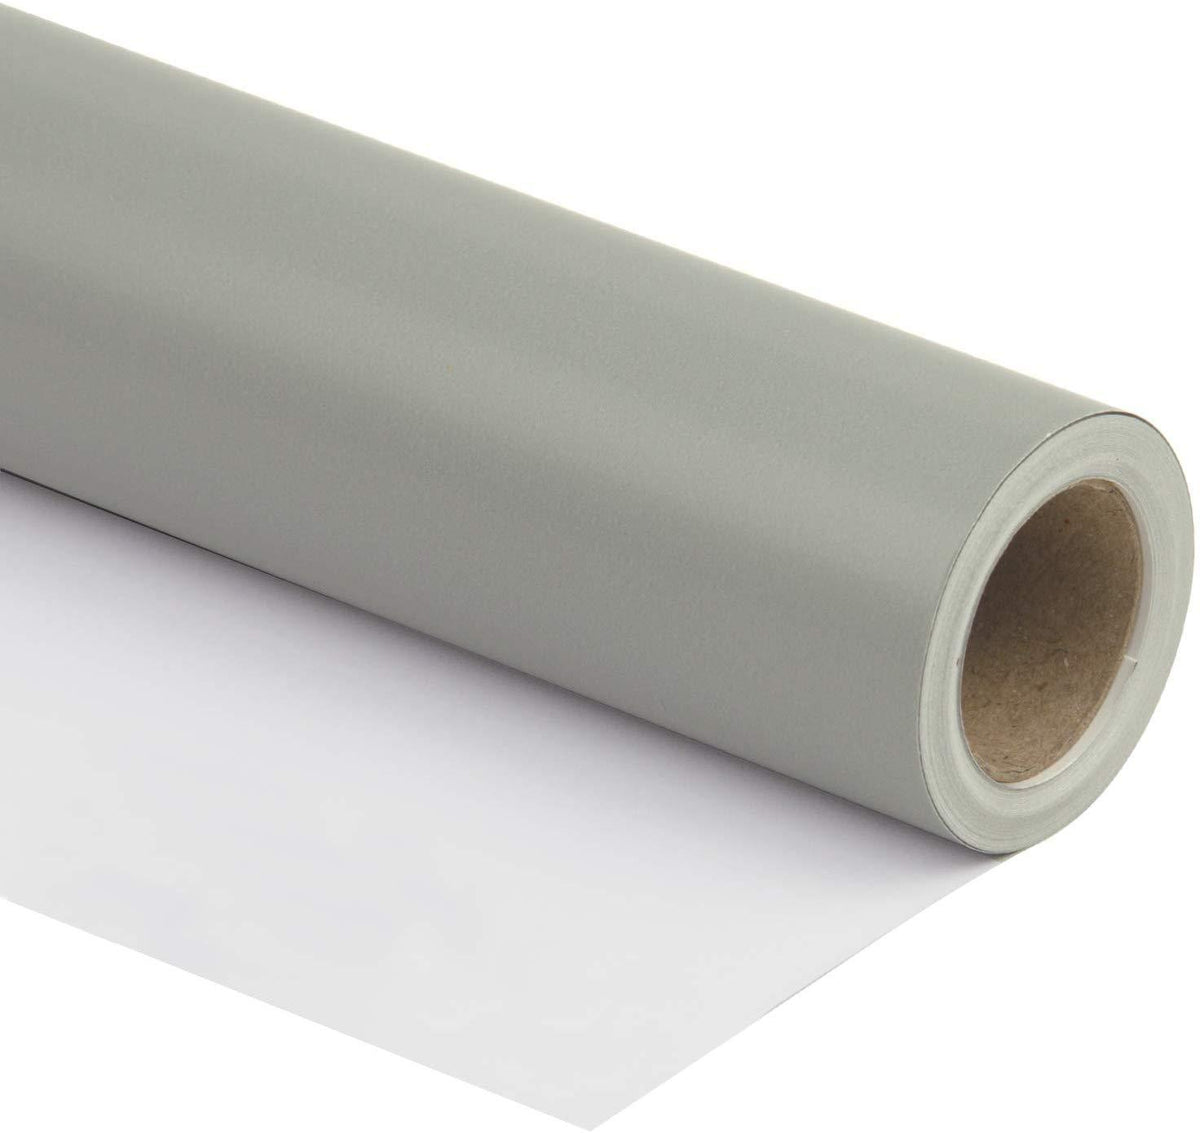 wrapaholic-glossy-gray-gift-wrapping-roll-m